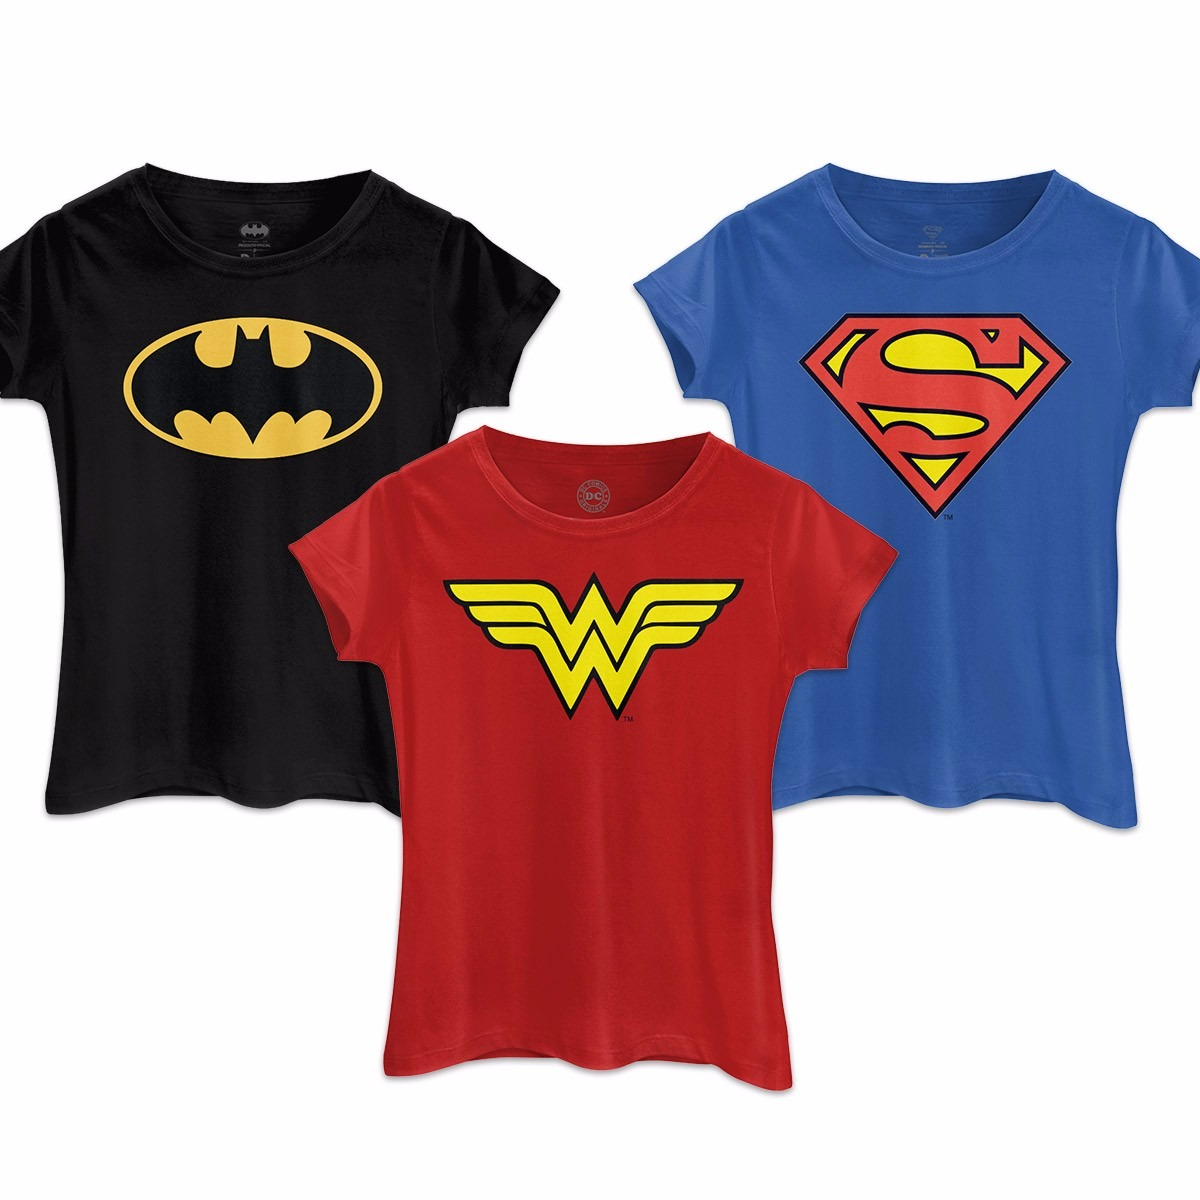 kit 3 camisetas batman wonder woman superman femininas. Carregando zoom. f41e4eded8437